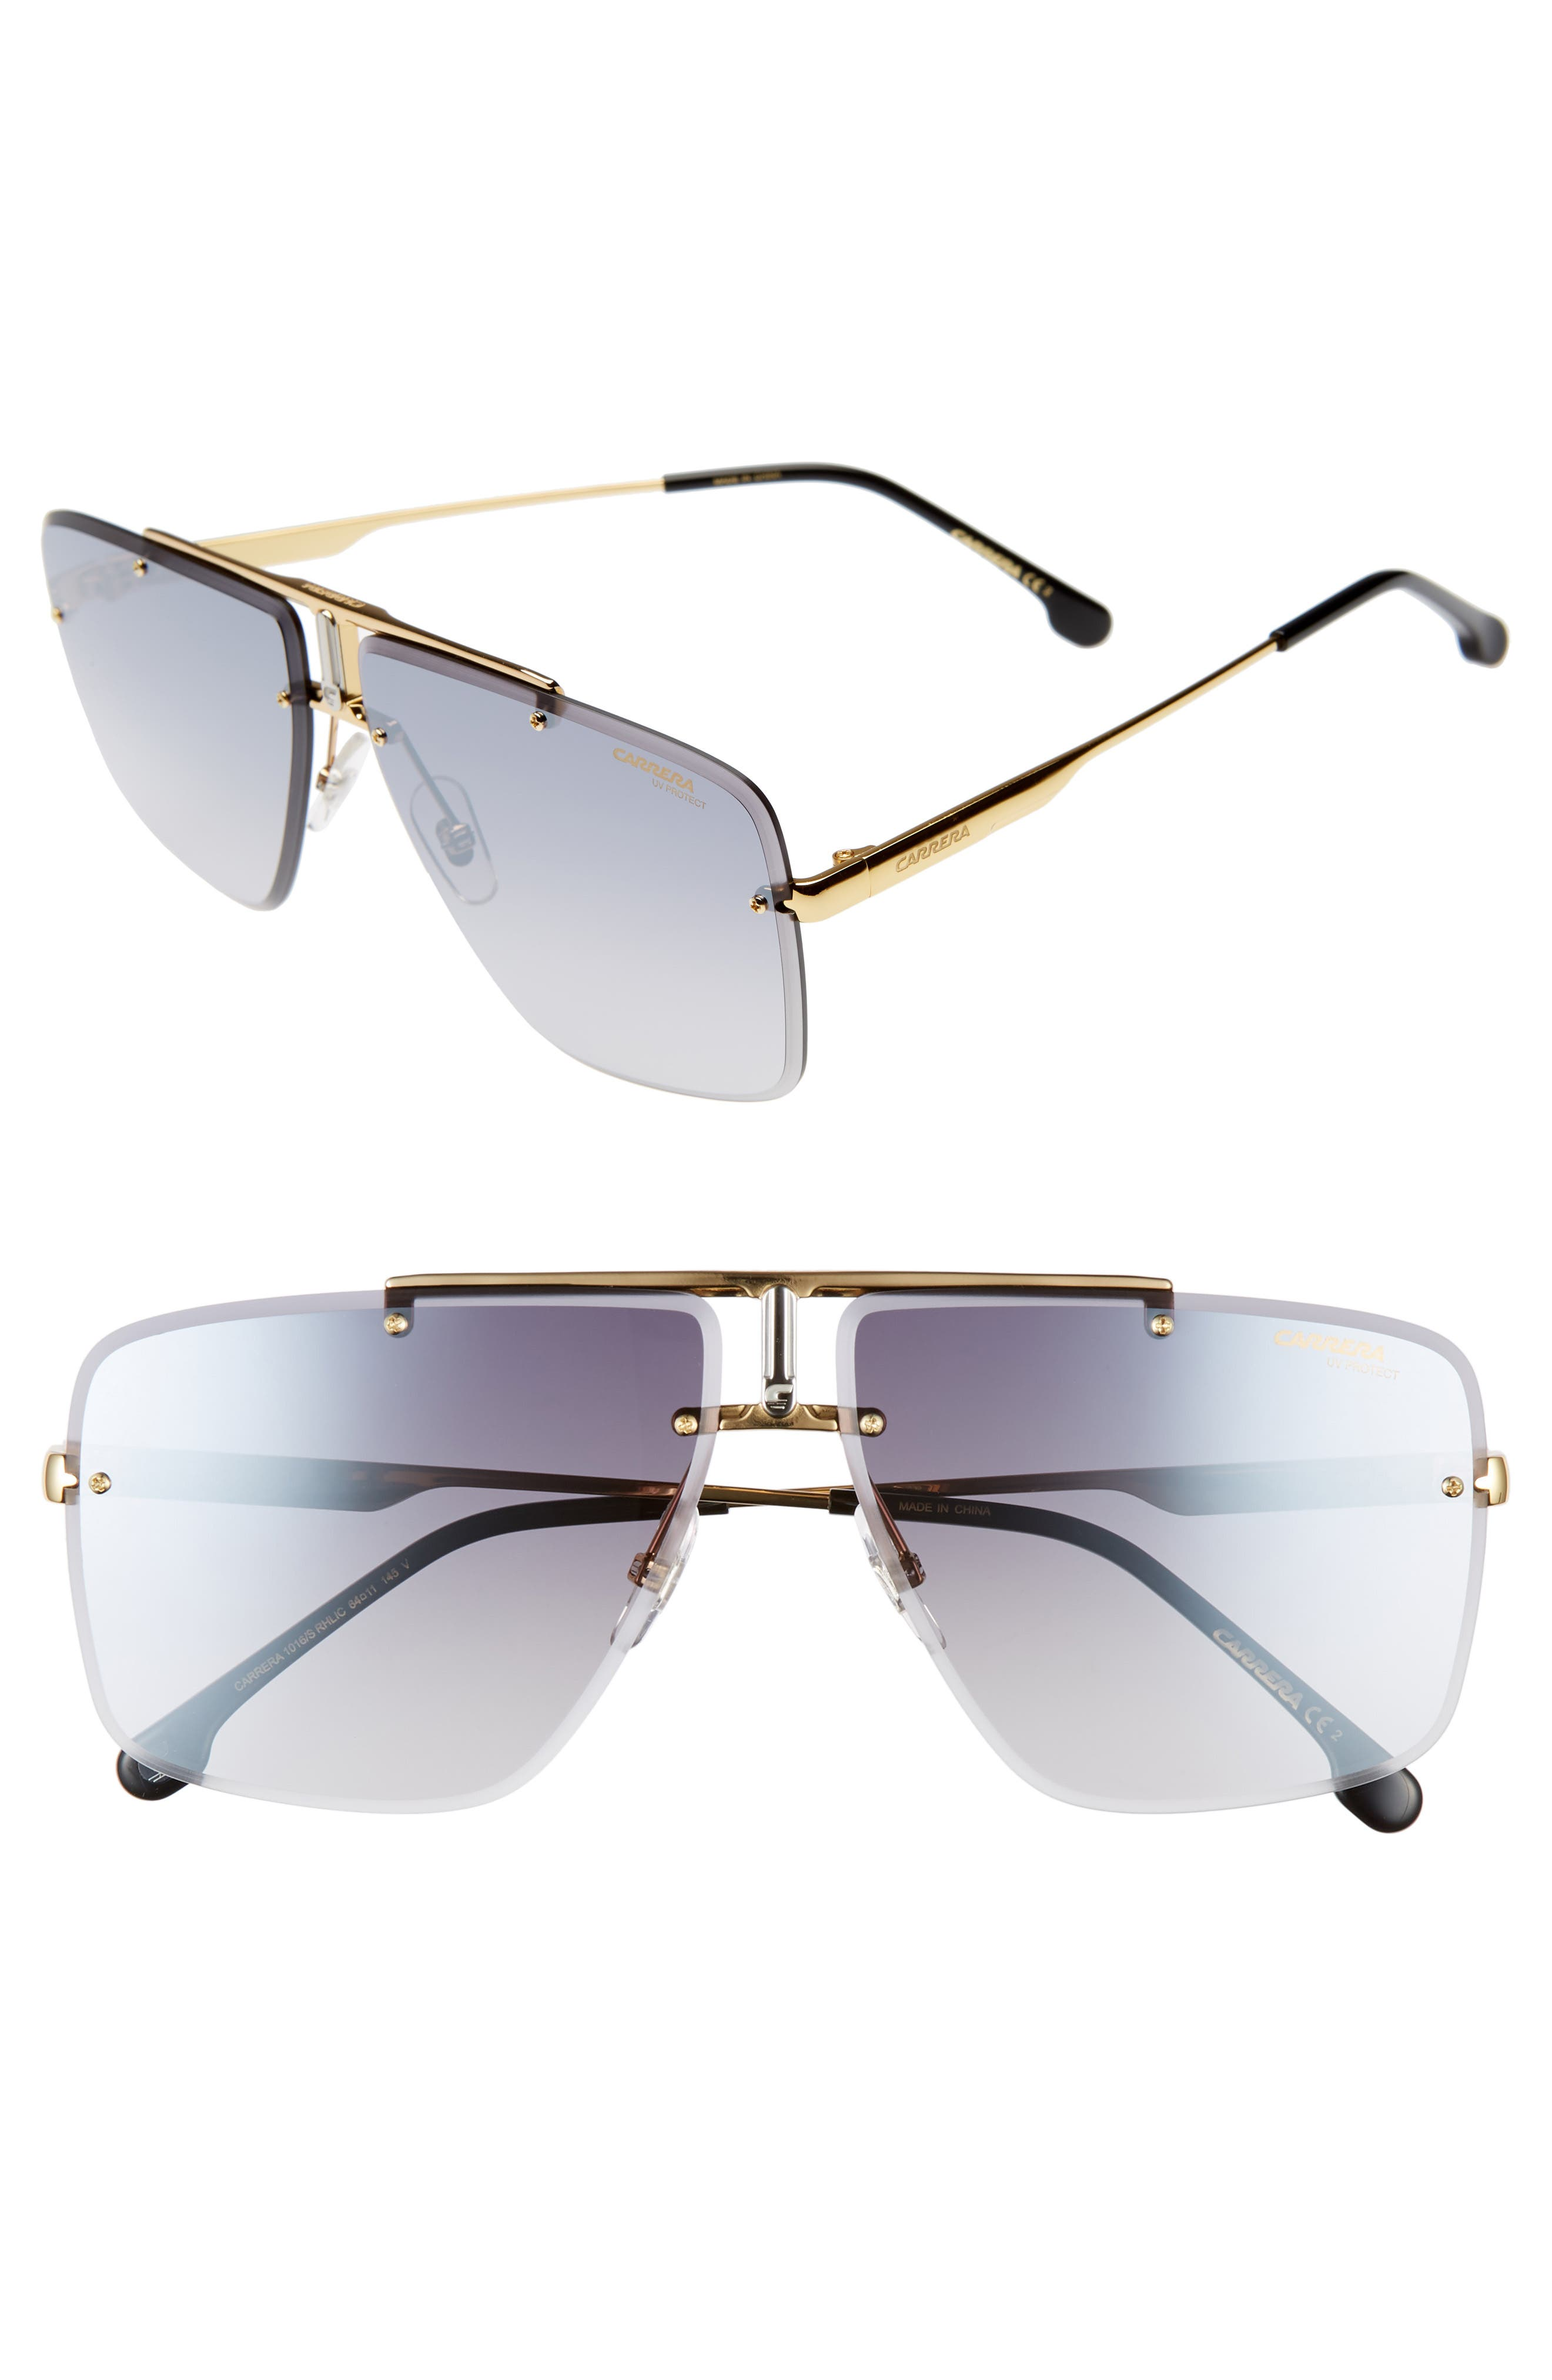 Carrera Eyewear Navigator Sunglasses - Gold Black